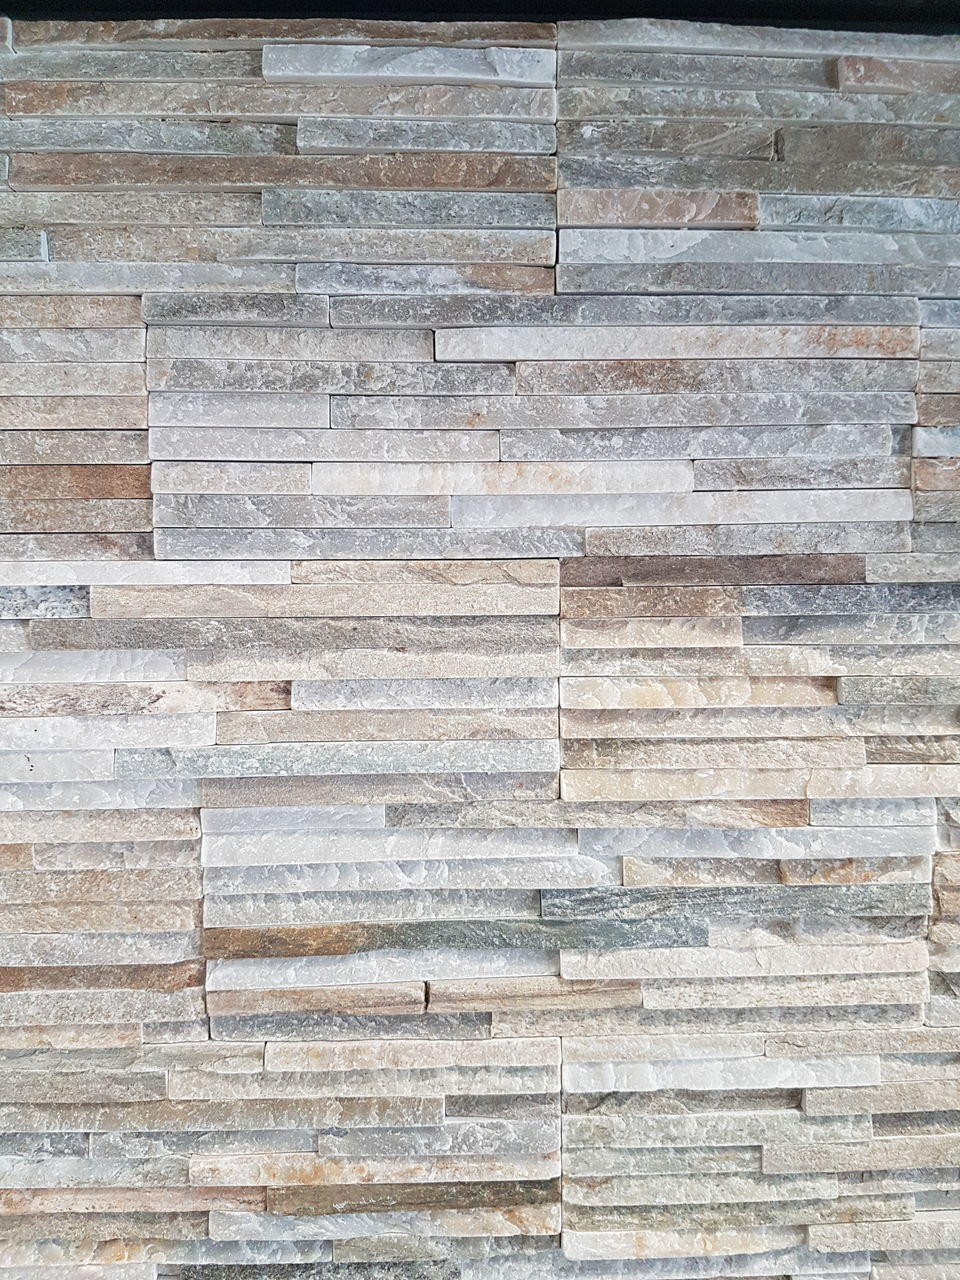 backgrounds, full frame, textured, pattern, wood - material, no people, plank, wood, close-up, day, wall - building feature, old, wood grain, weathered, brown, outdoors, built structure, flooring, rough, directly above, textured effect